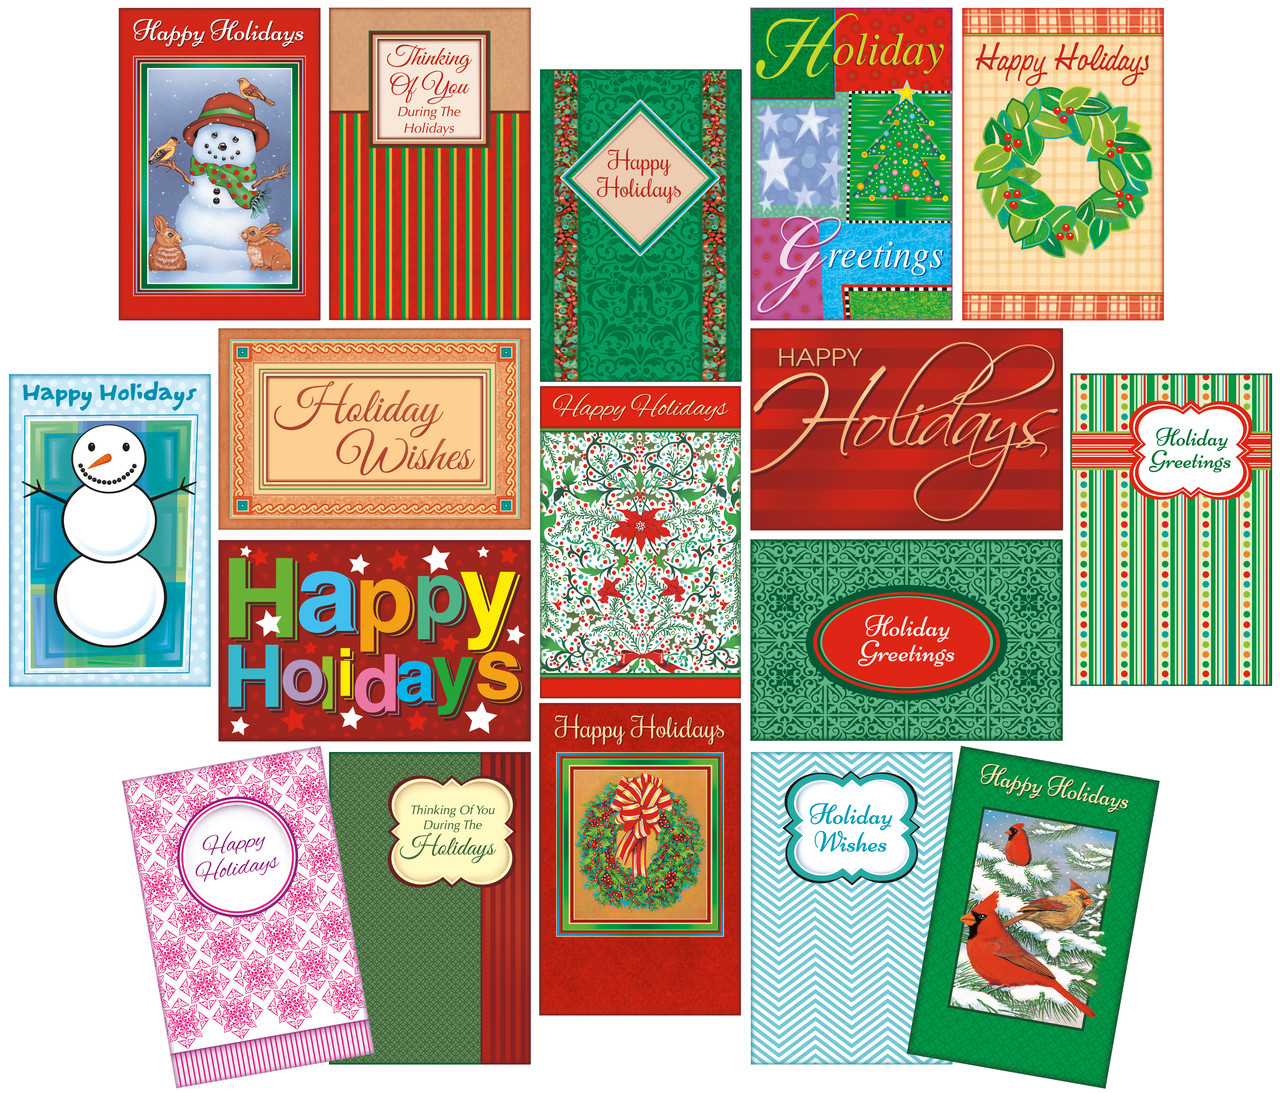 19¢ per card Happy Holiday DEAL (120 cards) - Stockwell Greetings